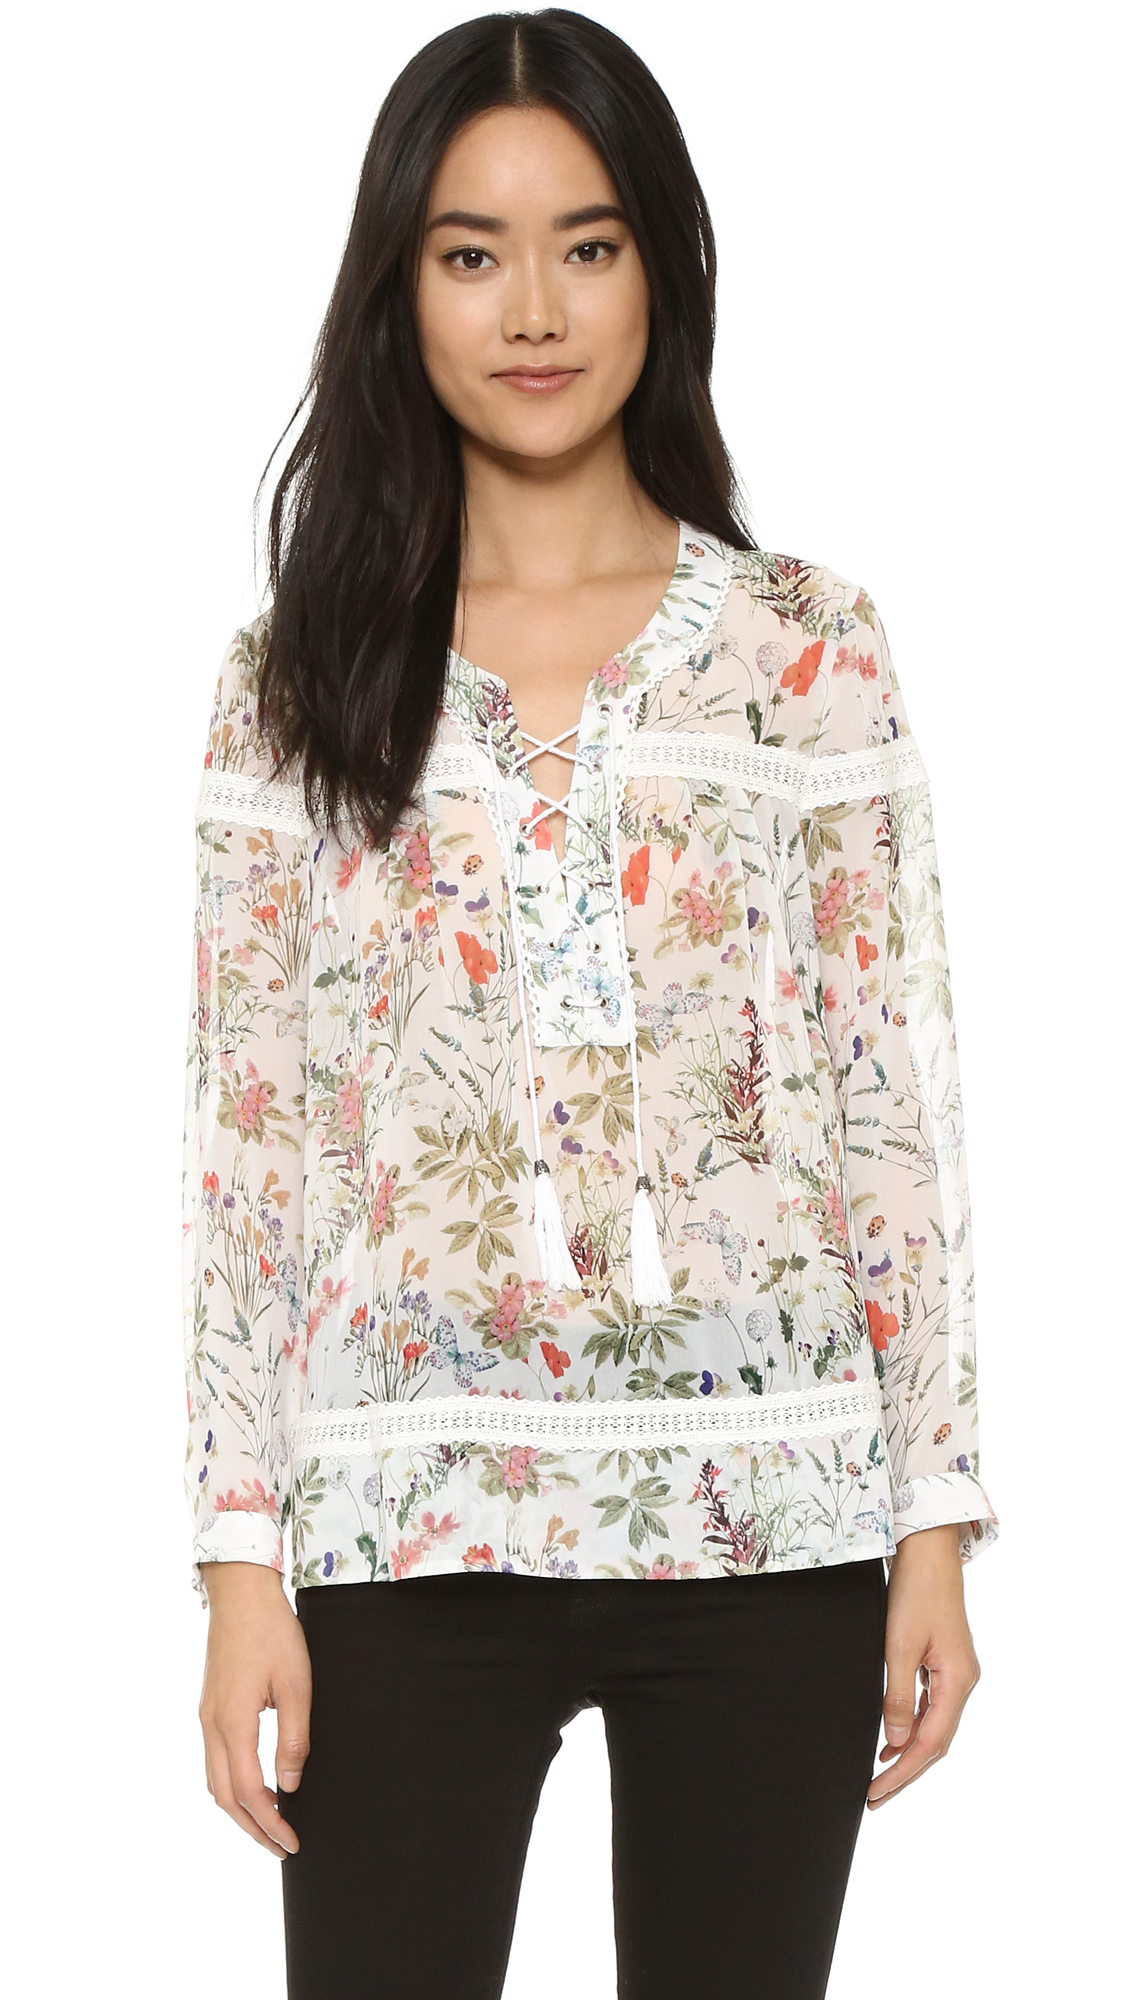 Botanic Soldes Lyst The Kooples Botanic Blouse In Natural